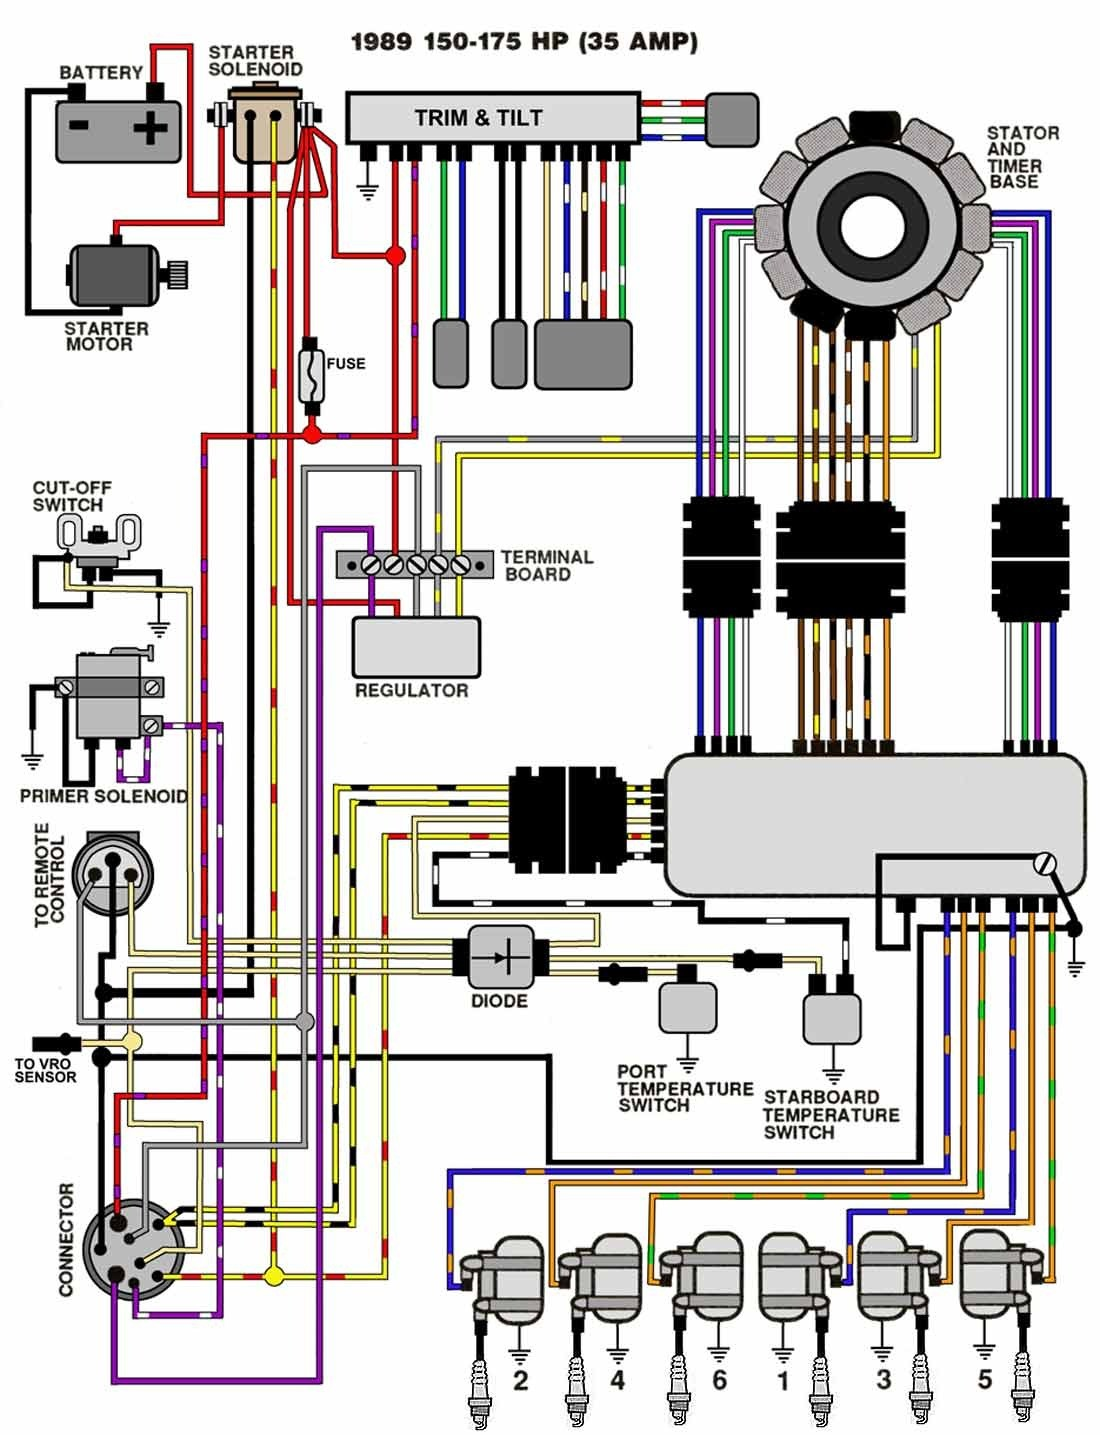 Volvo Excavator Wiring Diagram Library 6al Msd Retard Box Free Download 2007 Xc70